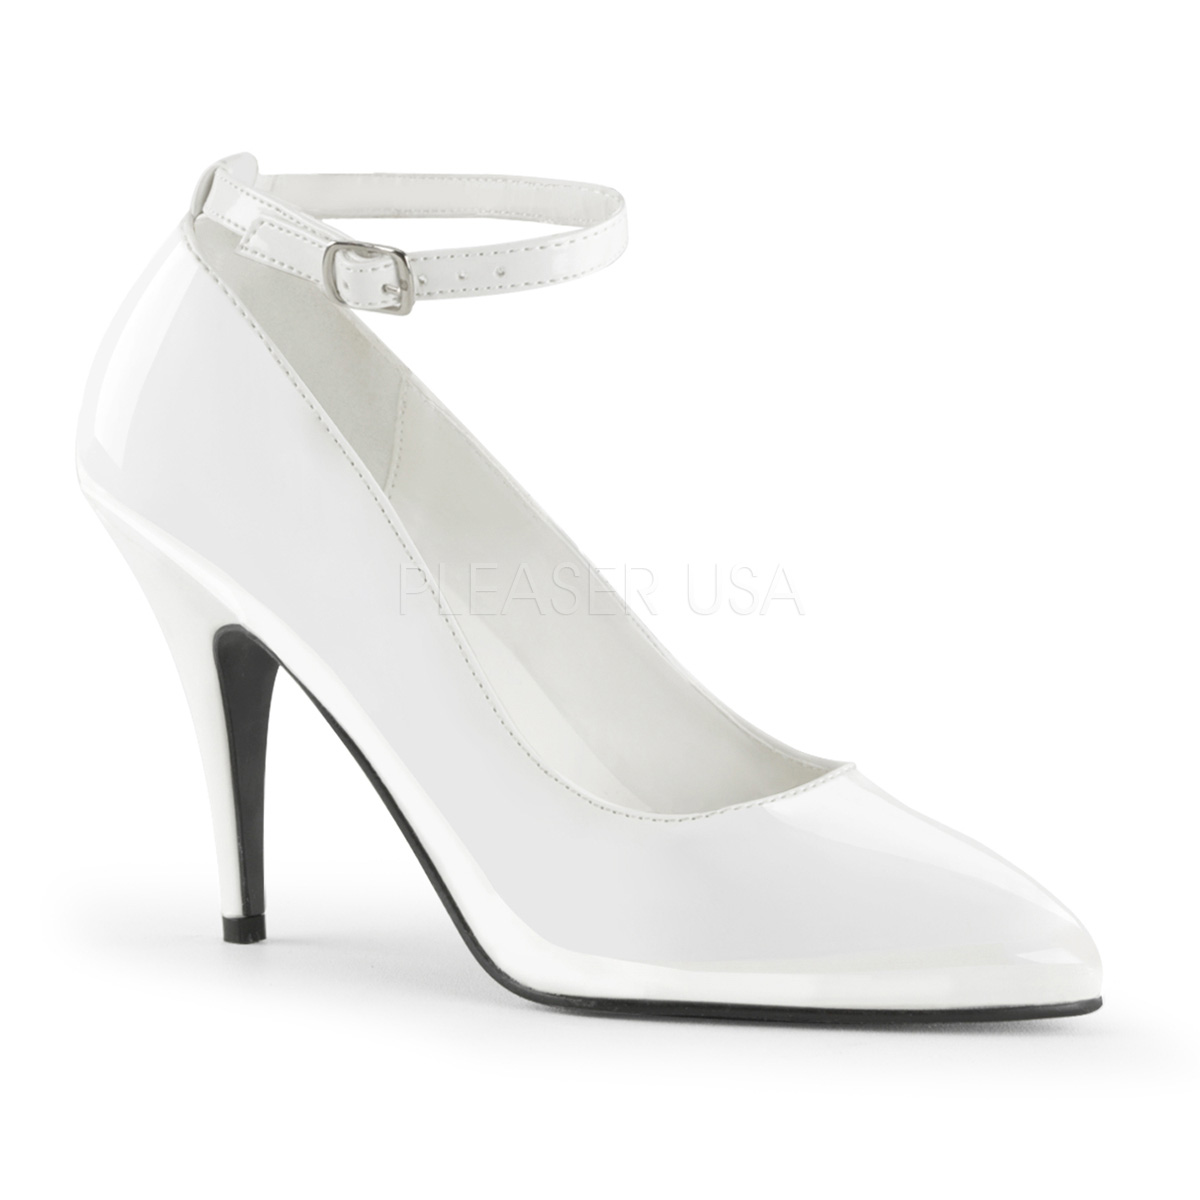 4 Inch Stiletto Heel Pump w/ Ankle Strap